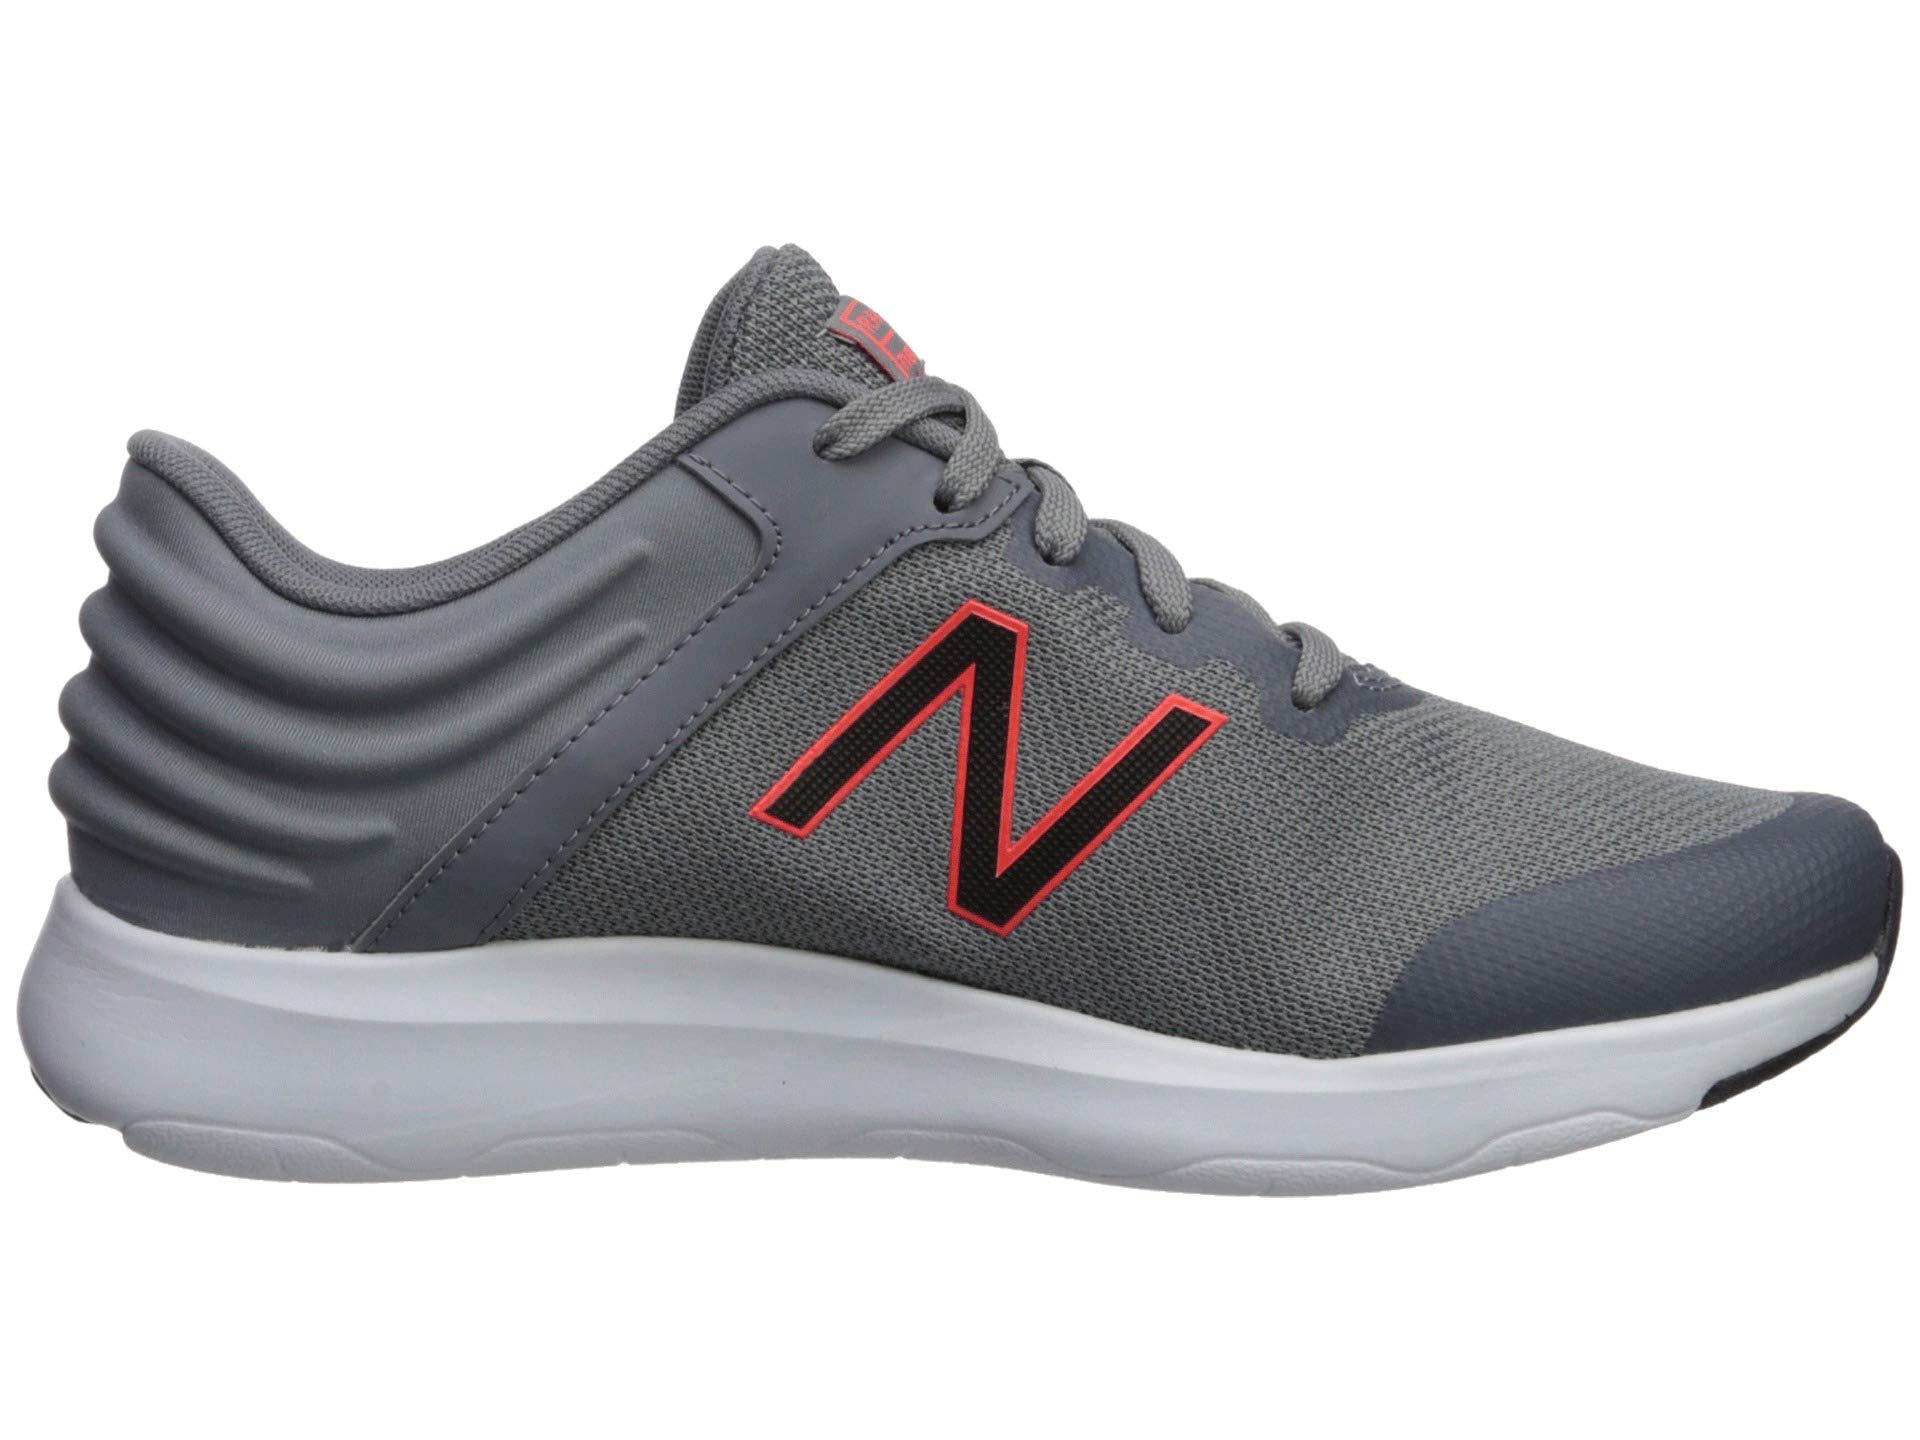 d01fdcabe9 Best Walking Shoes - Most Comfortable Shoes 2019